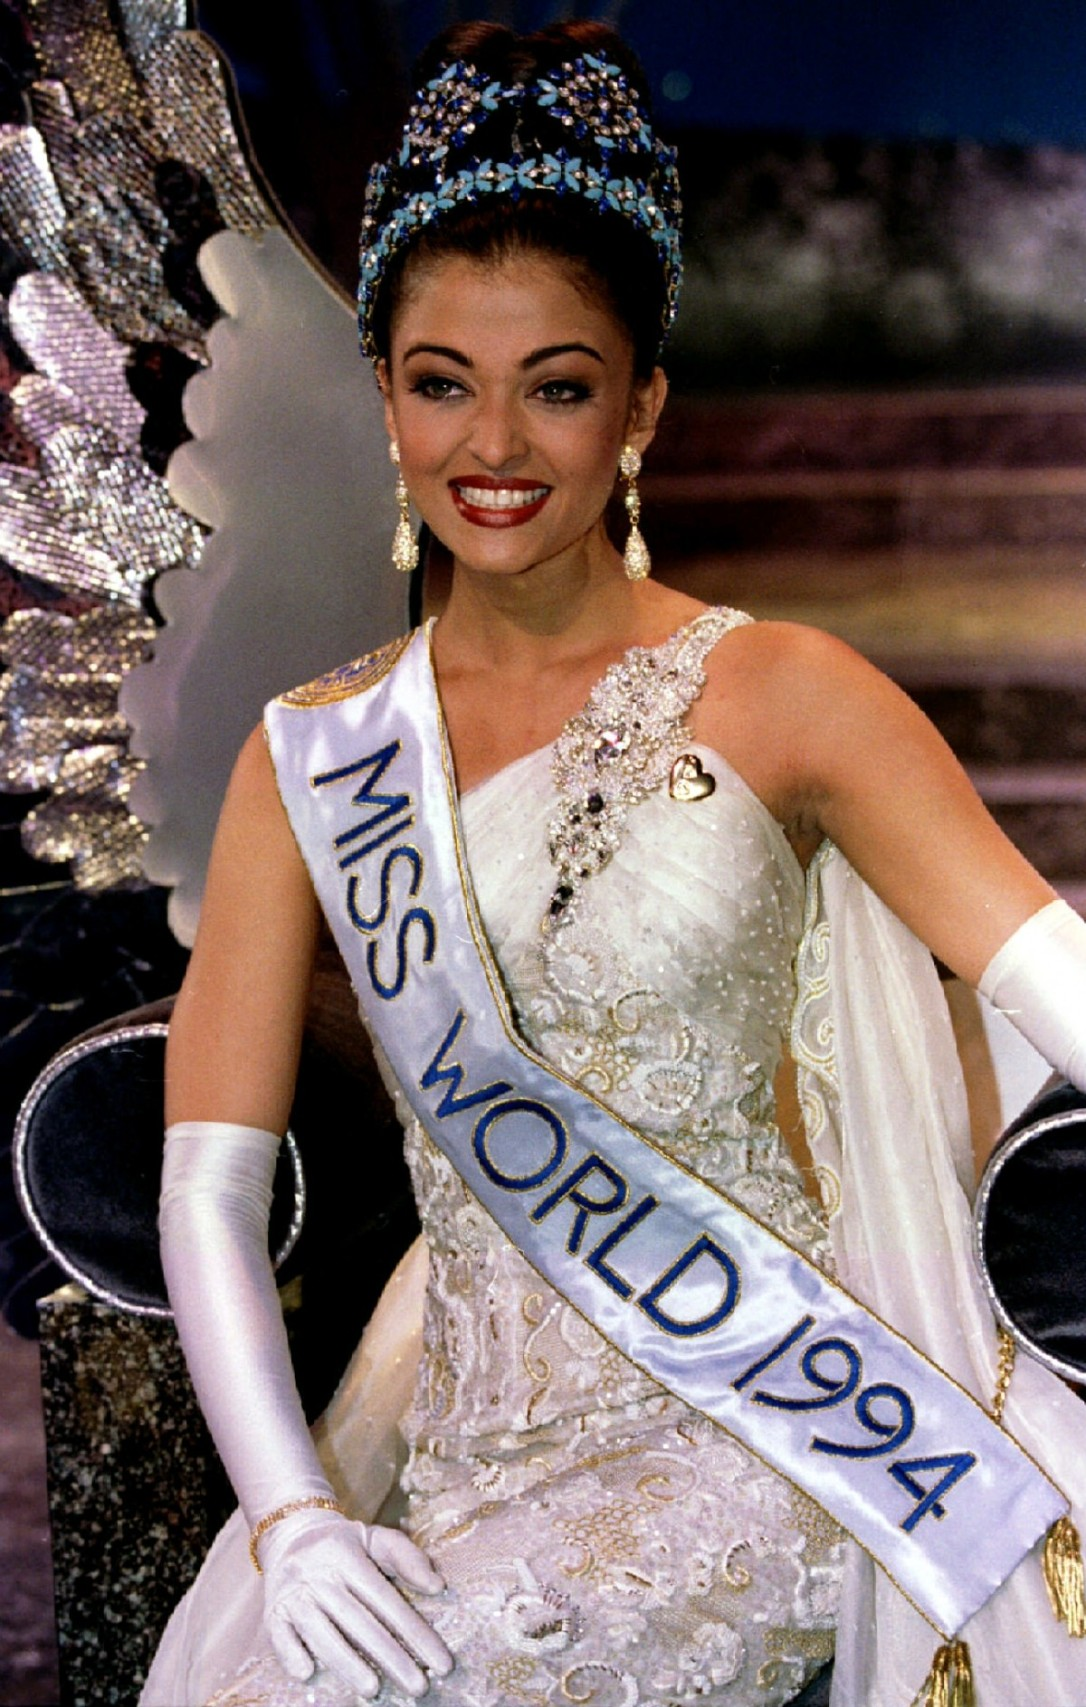 1448009664_miss-india-aishwarya-rai-sits-her-throne-moments-after-being-crowned-miss-world-1994-november-19.jpg